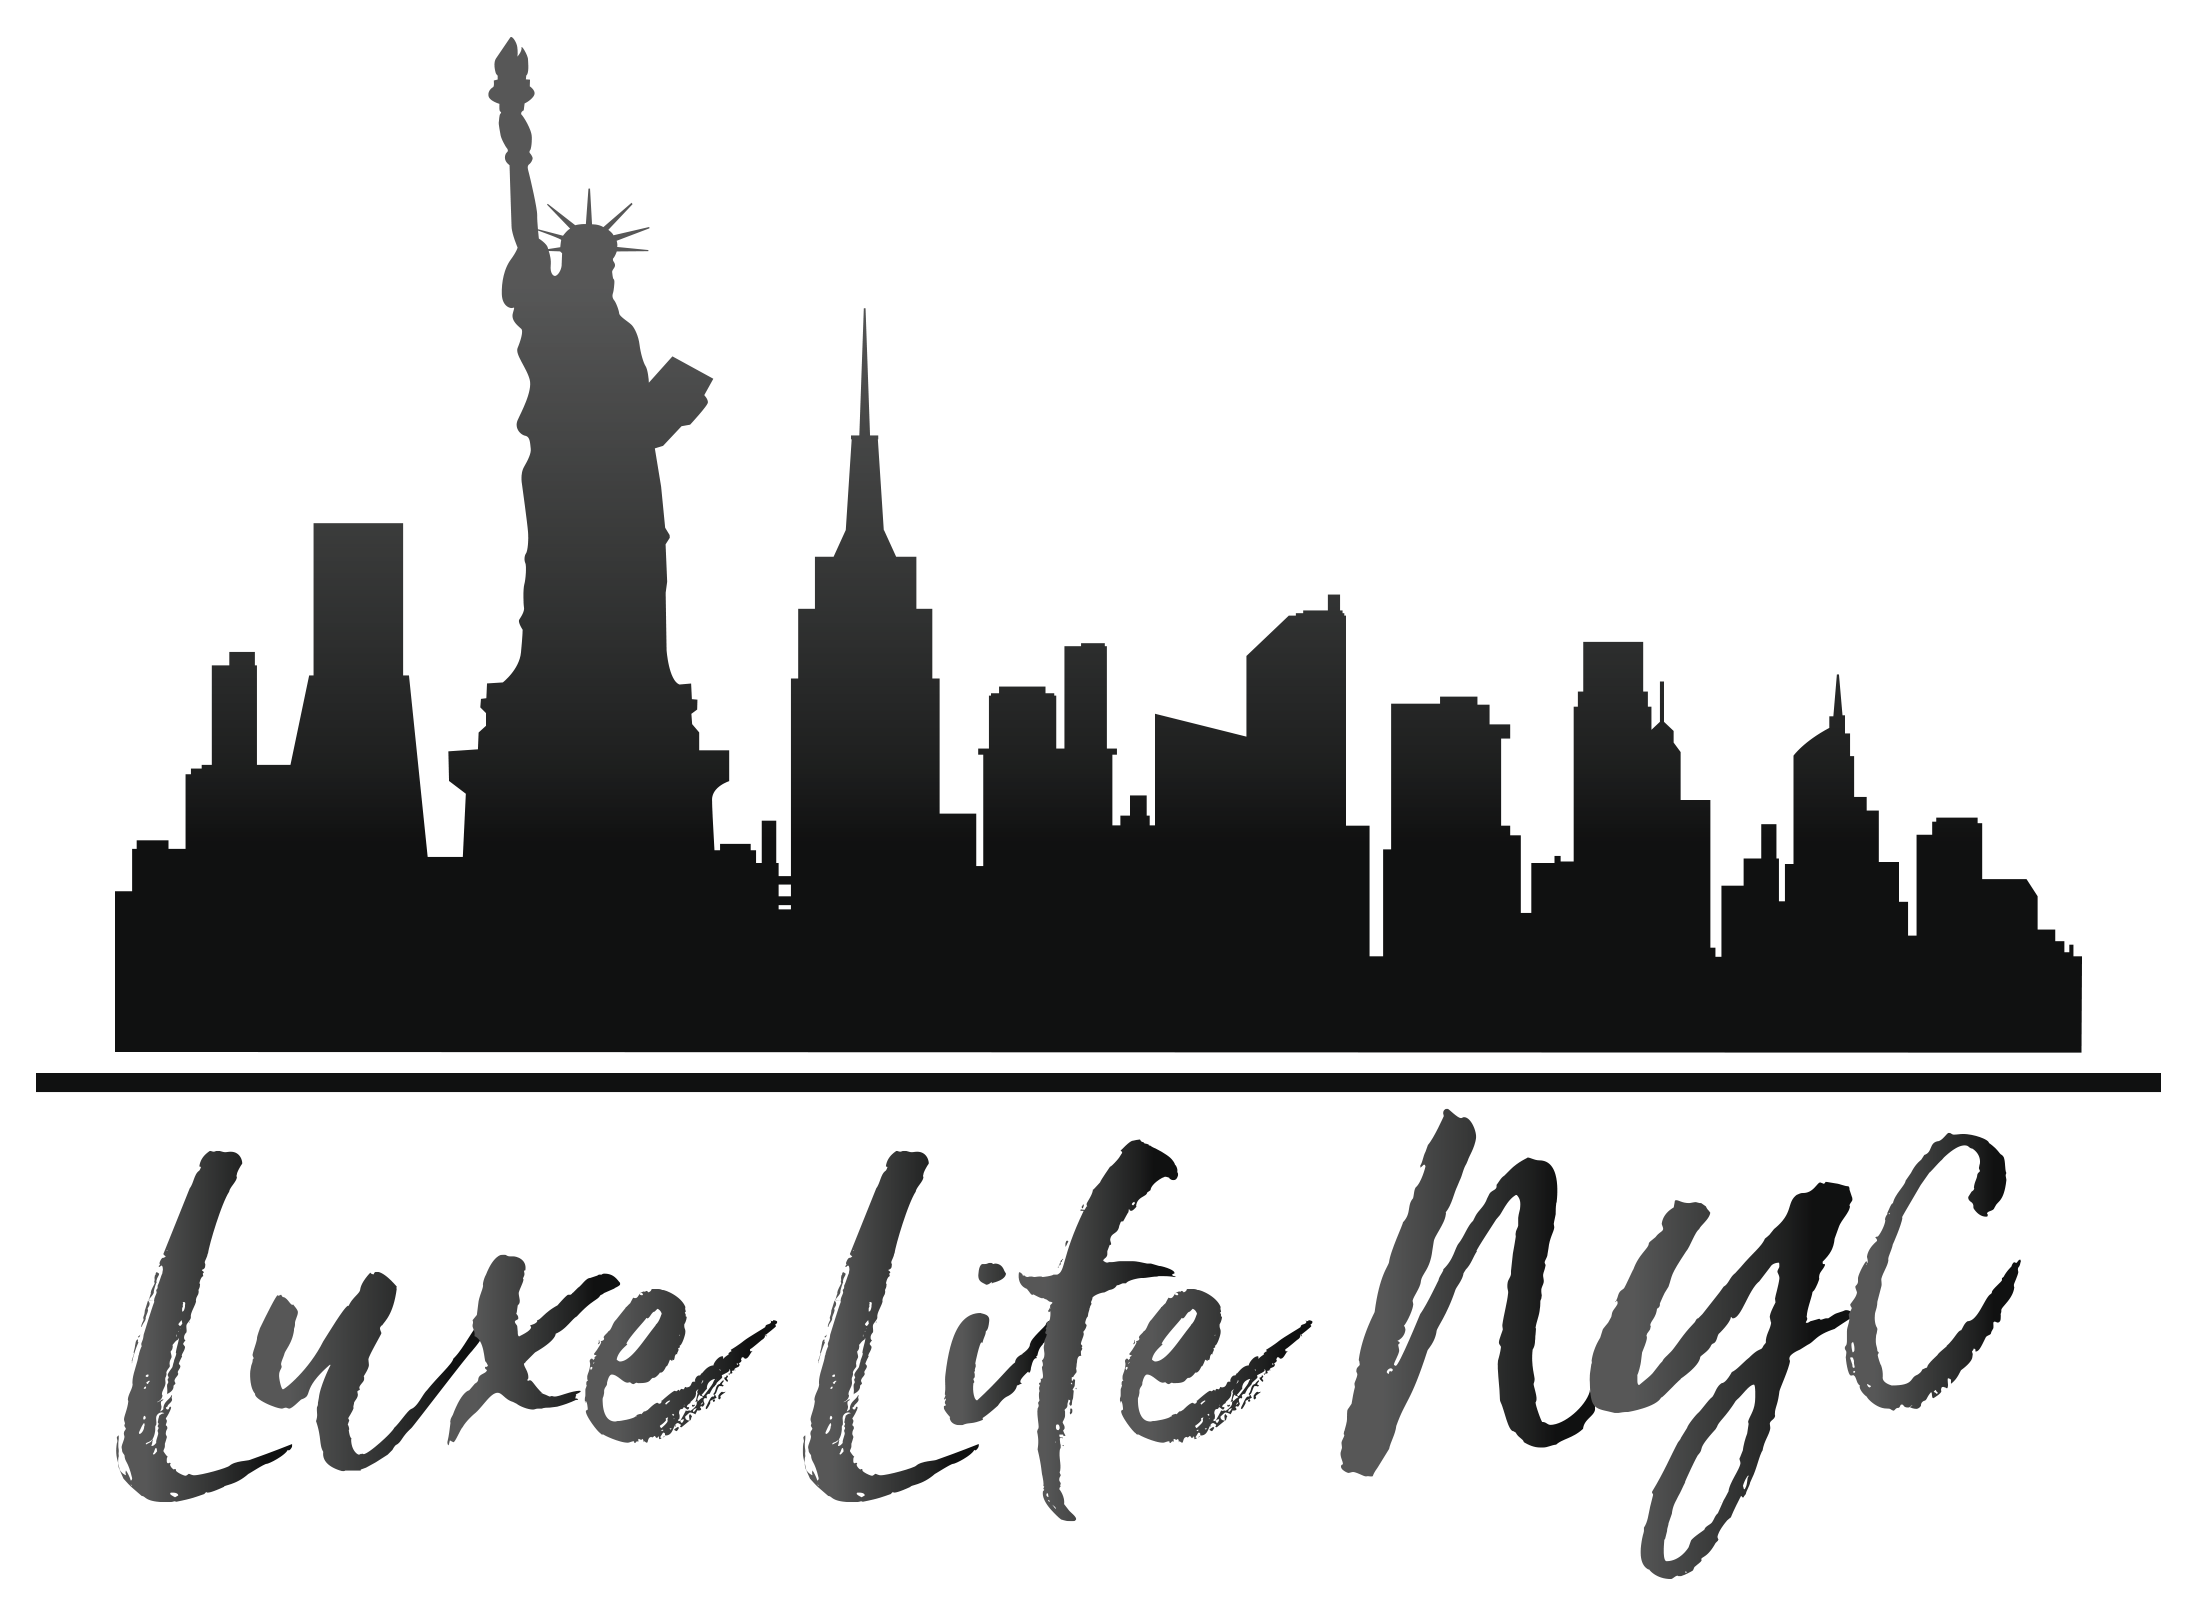 Luxe Life NYC